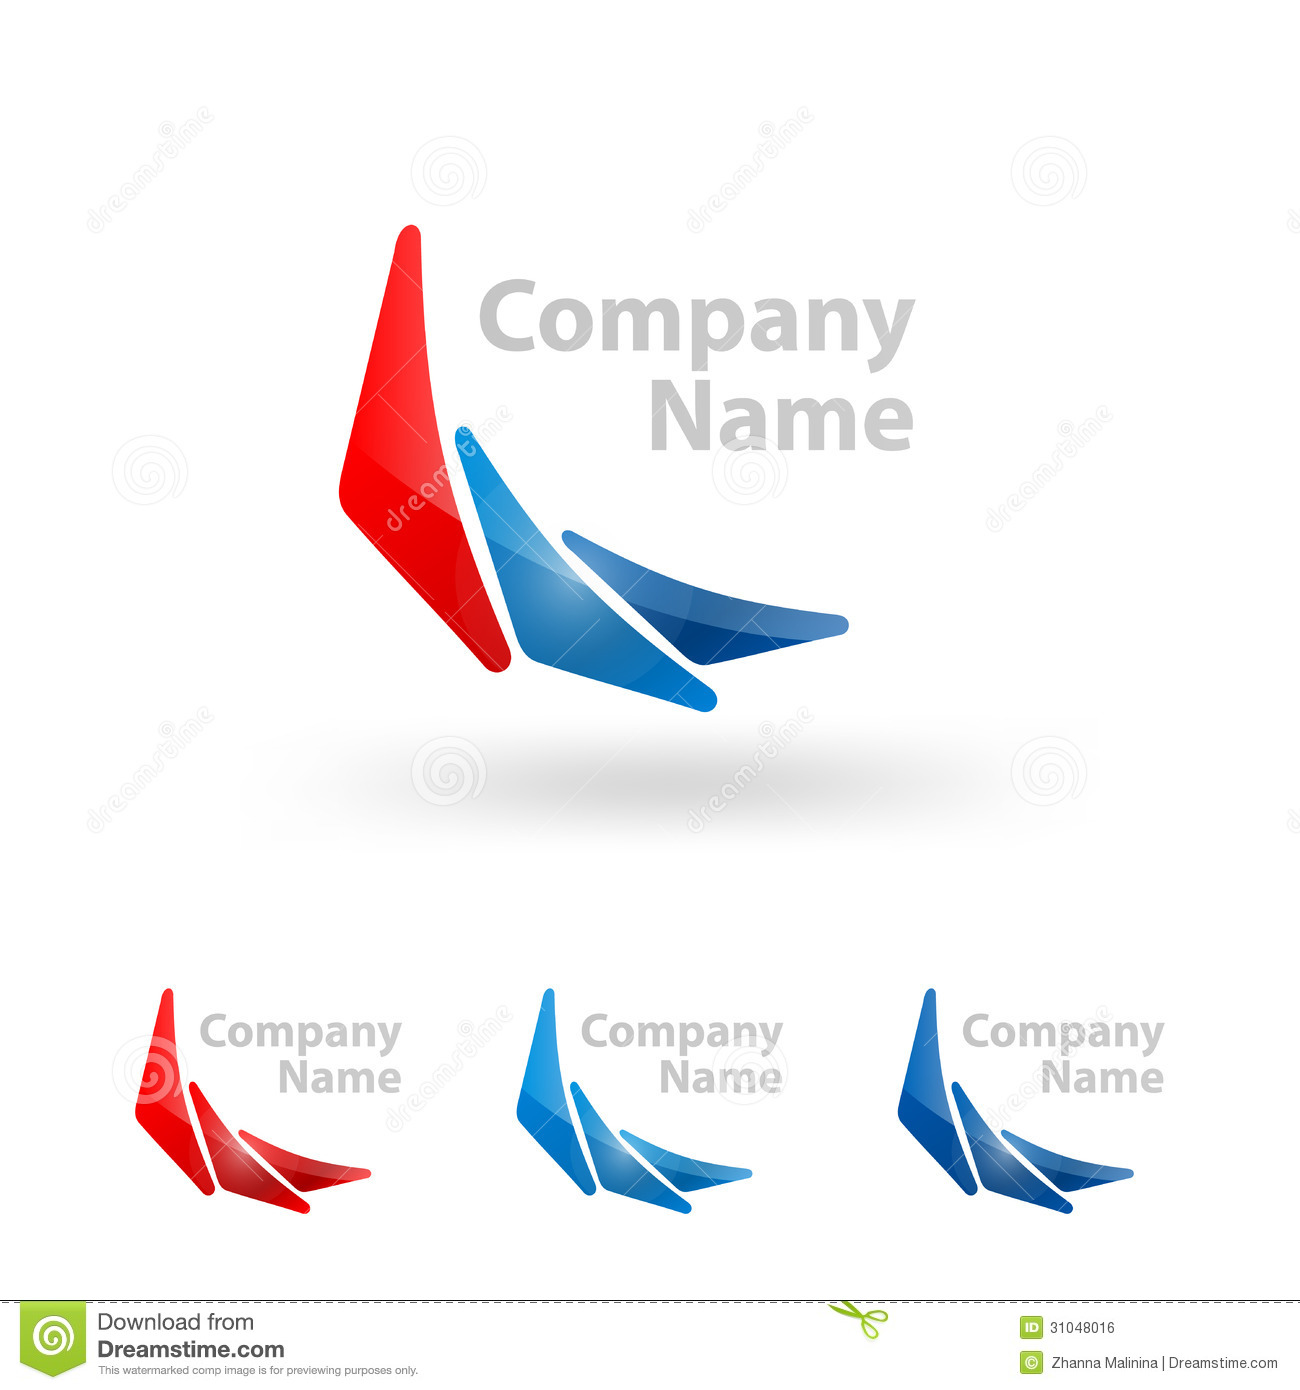 Triangle logo company name design stock vector illustration of triangle logo company name design cheaphphosting Gallery